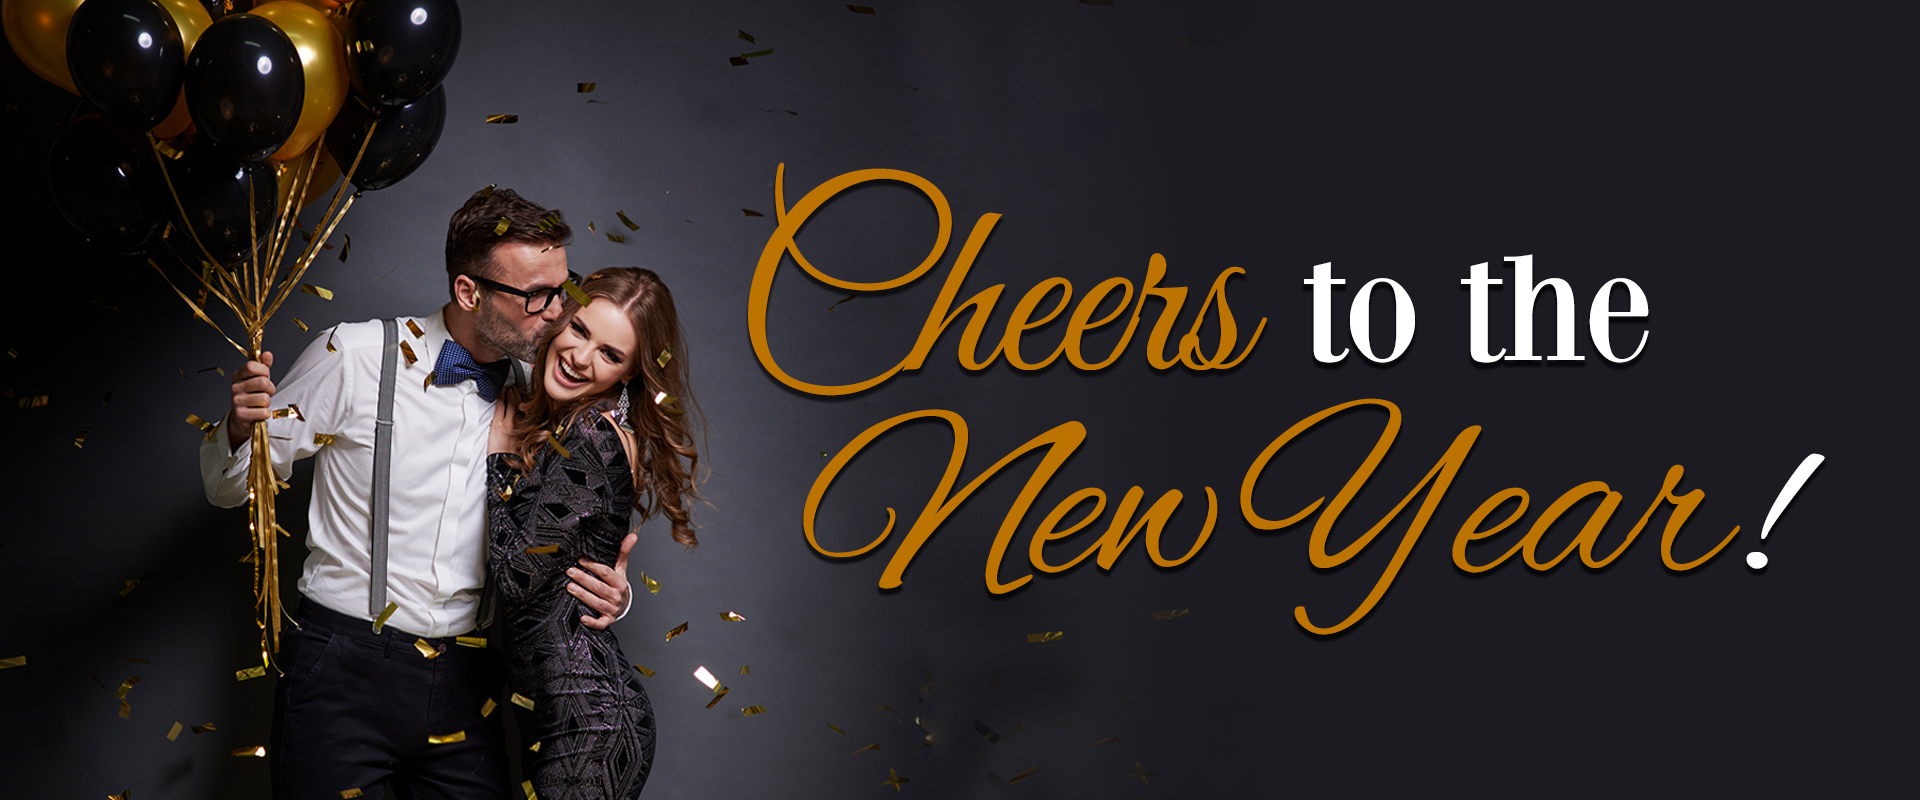 Couple celebrating the new year with black and gold balloons and confetti  with the text Cheers to the New Year over layed